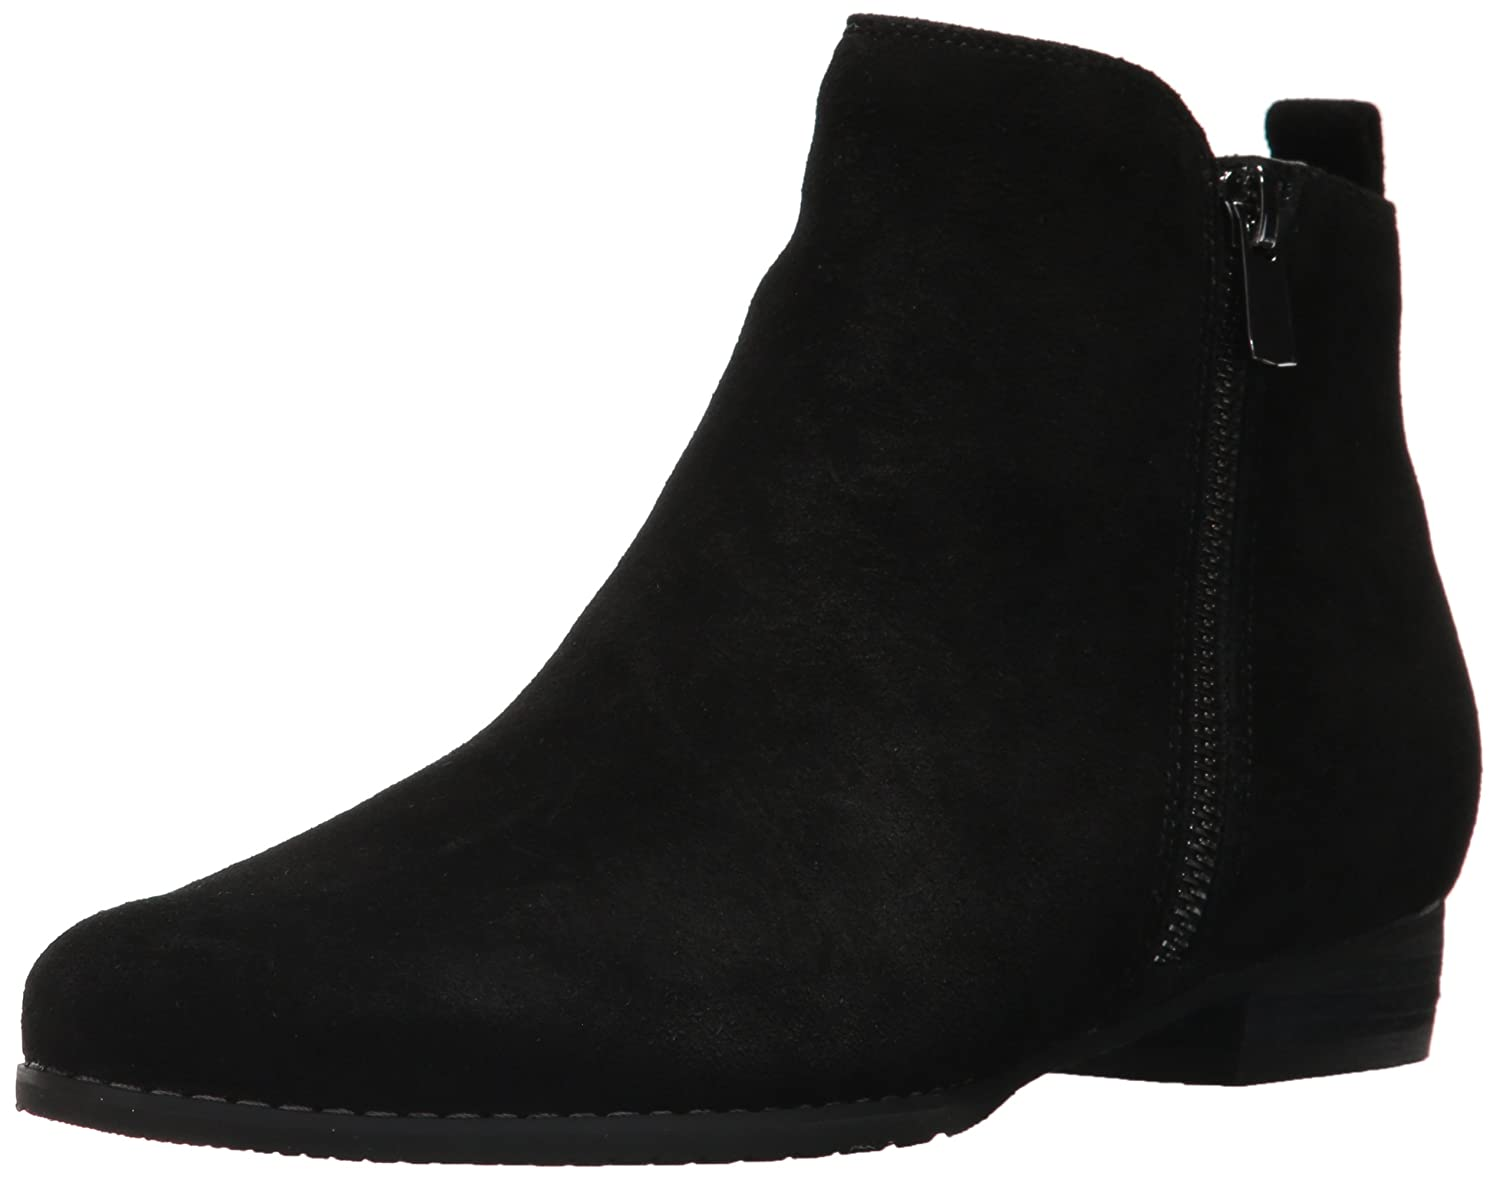 Blondo Women's Lynne Waterproof Ankle Bootie B072MDRL3S 8 B(M) US|Black